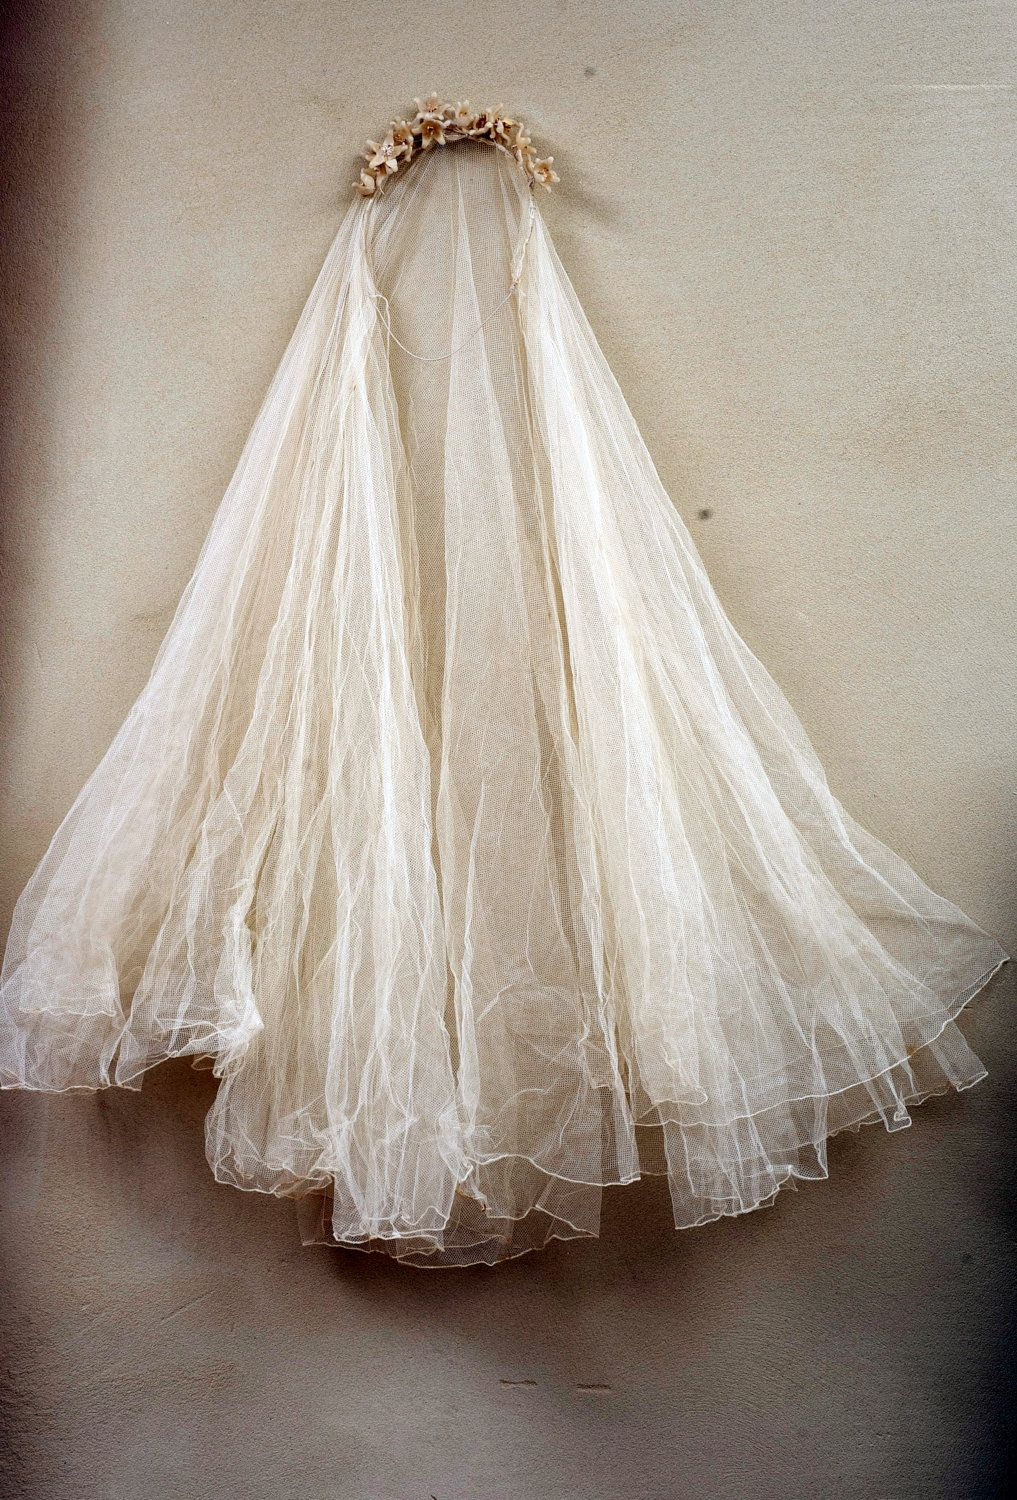 antique french ghostly tiara tulle veil wax lily flowers leaves